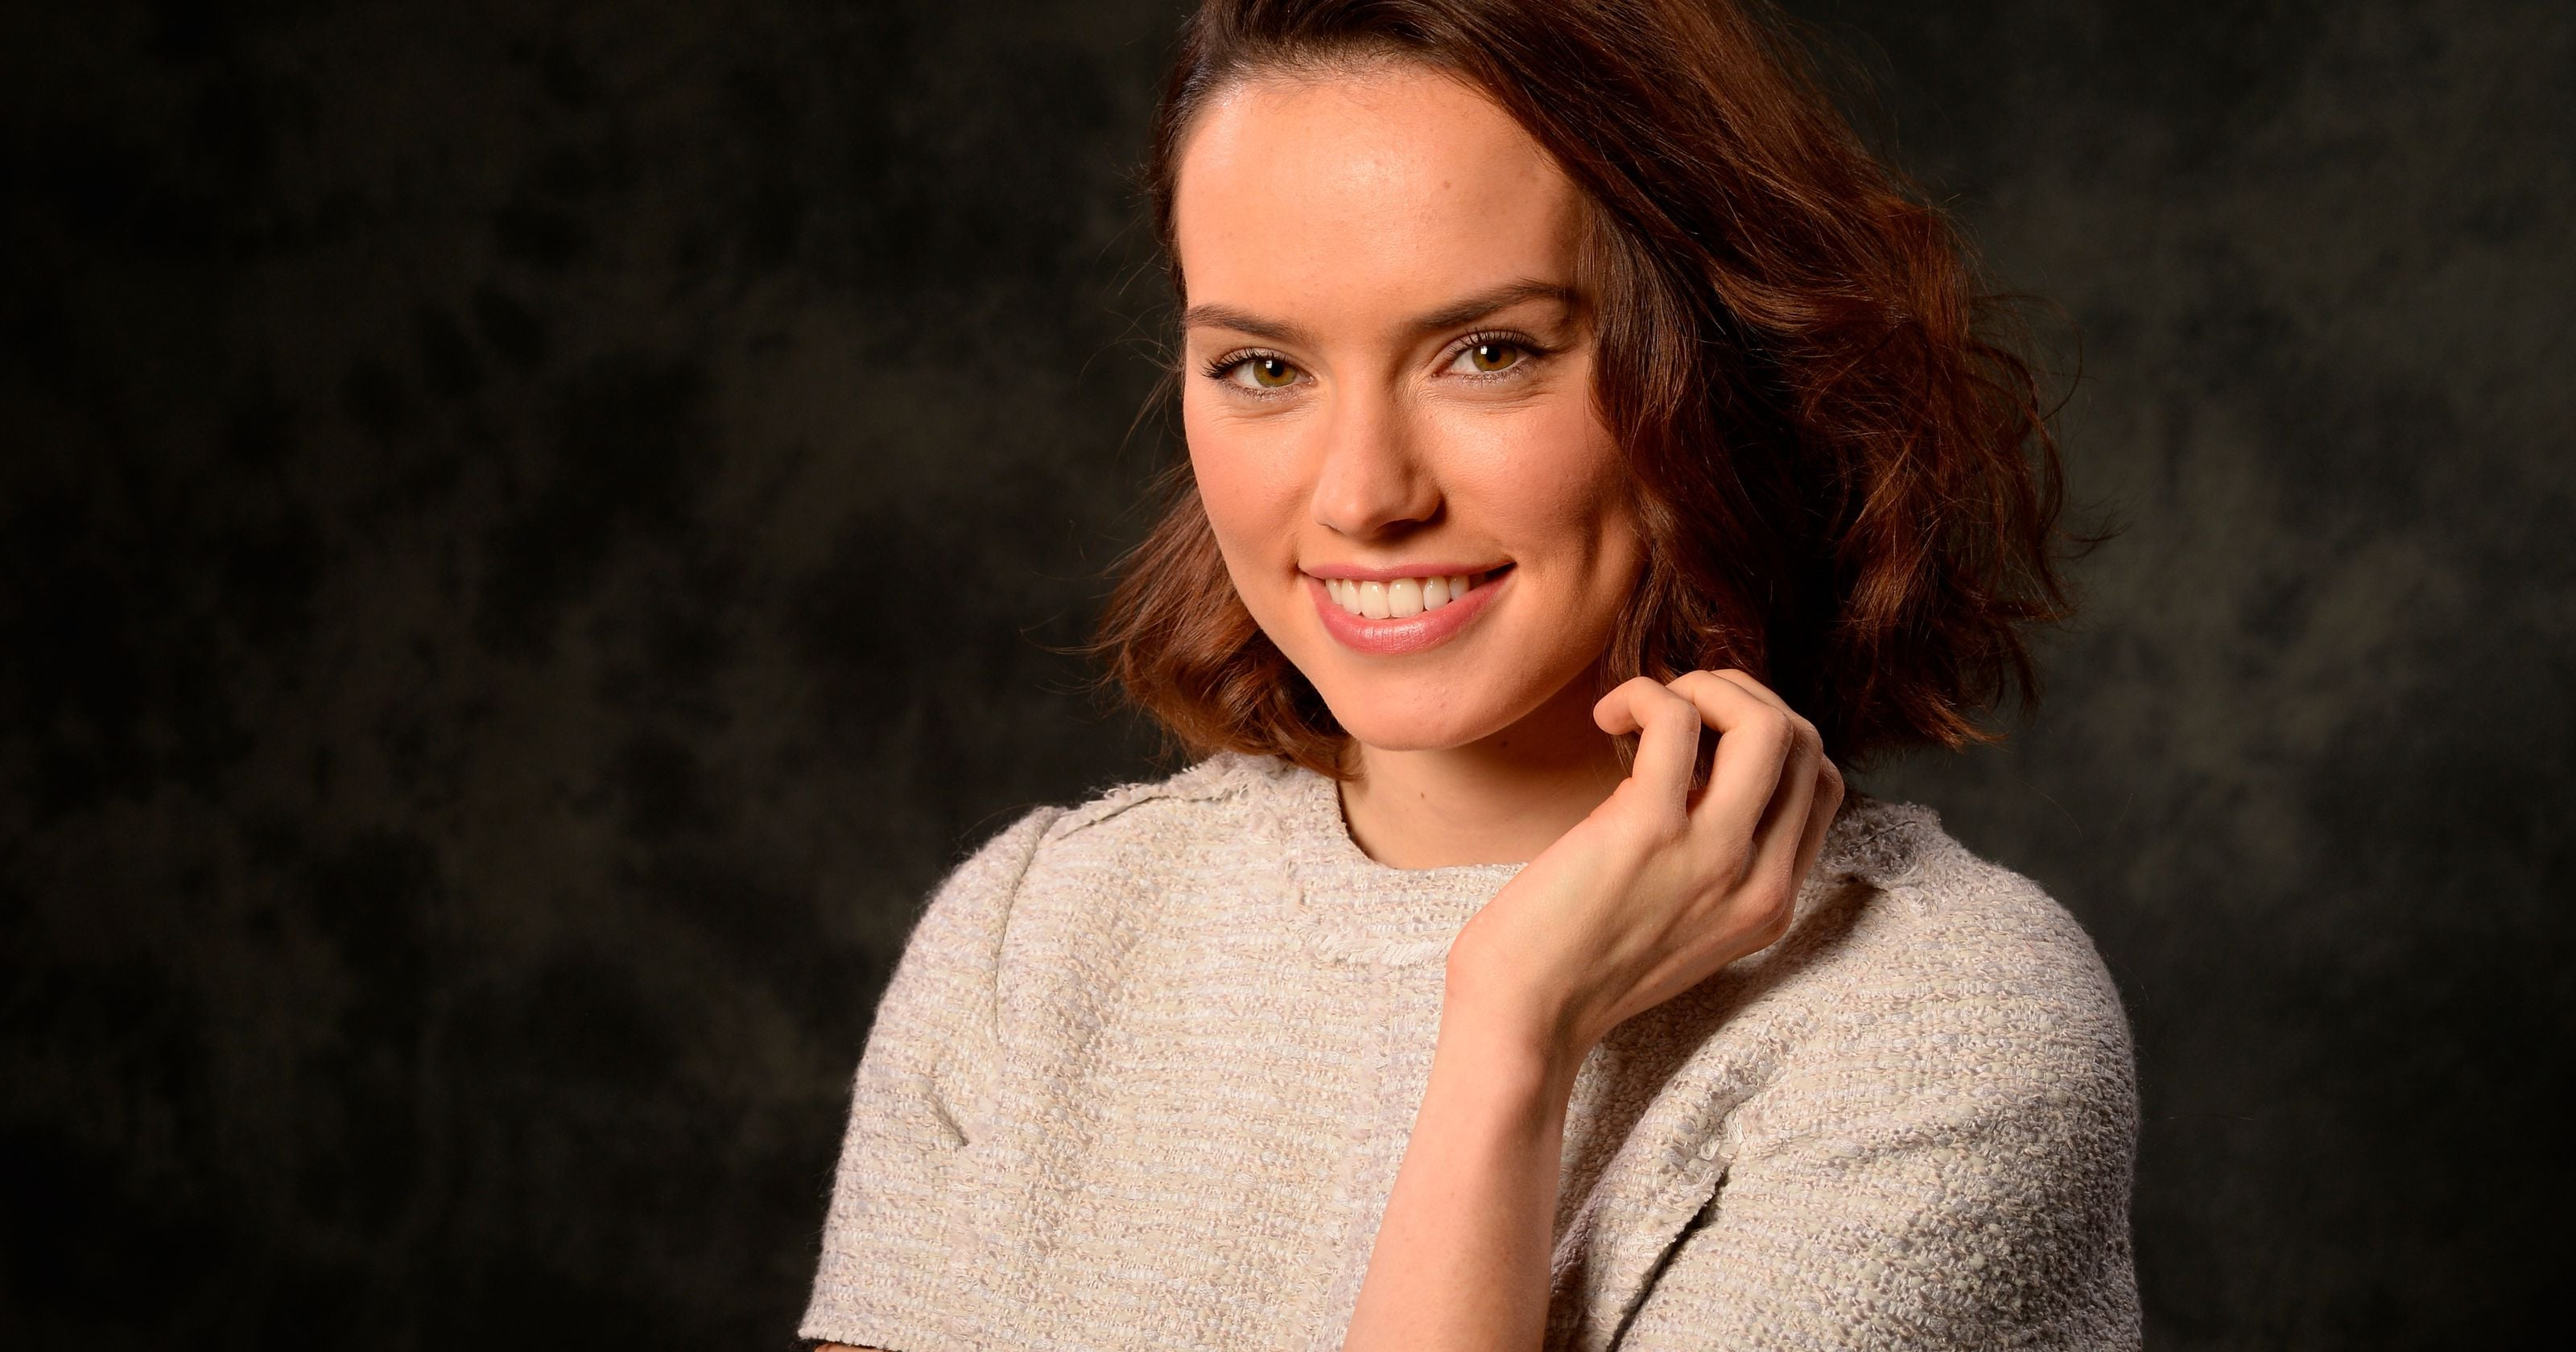 3200x1680 - Daisy Ridley Wallpapers 6